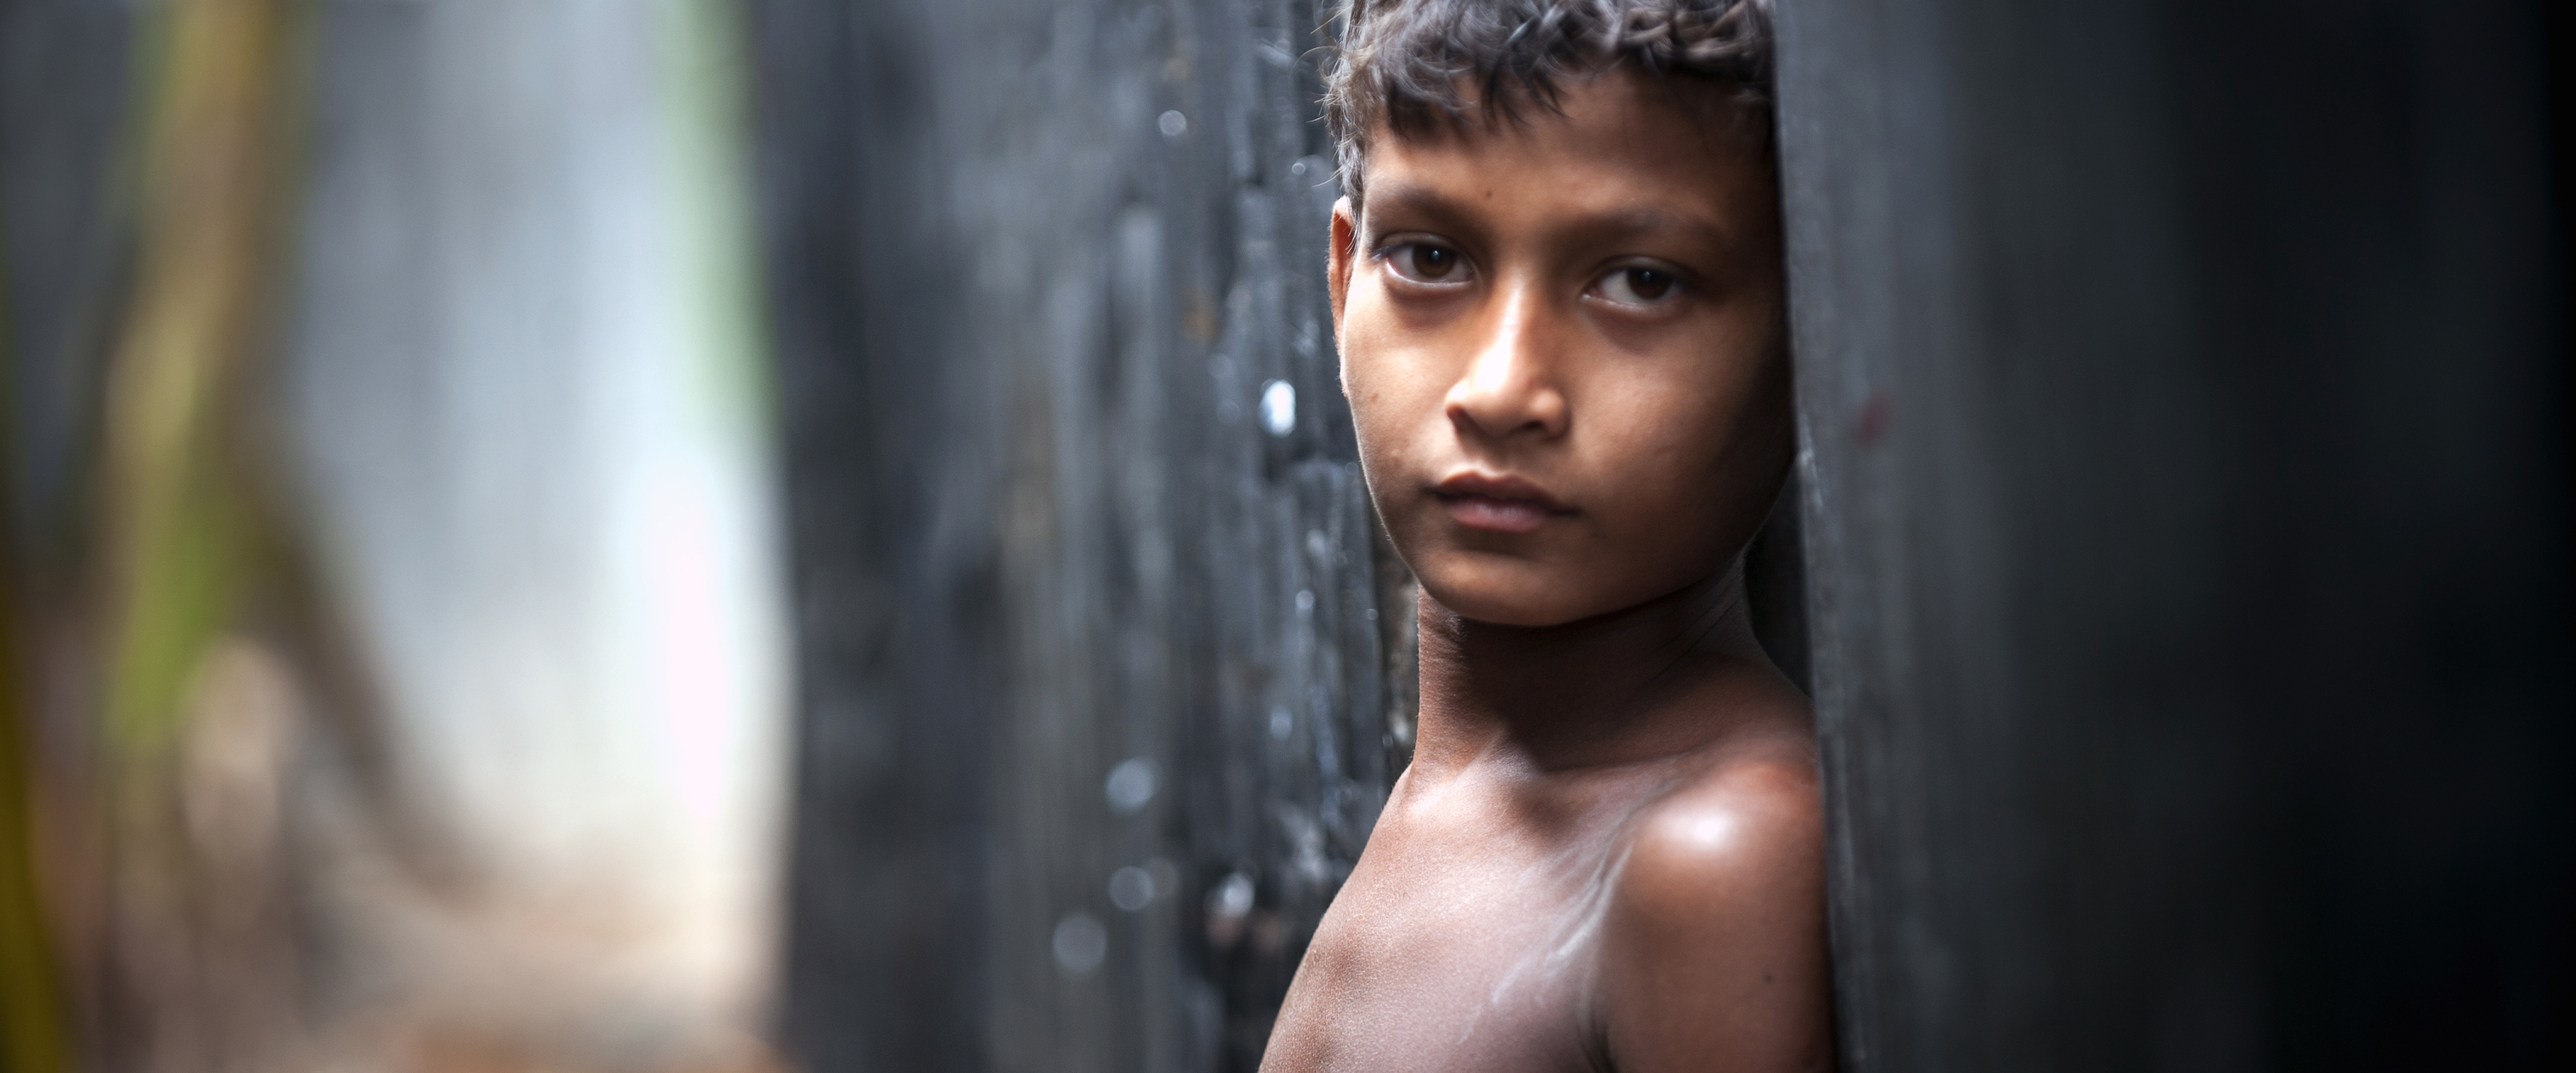 13 June 2010-Dhaka, Bangladesh-A child in Karial slum, one of the urban slum in Dhaka: Half the world's population (World-6.75 billion as of 2008) lives in cities and towns. One billion people, one out of three urban dwellers are living in slum conditions. (UN Millennium Development Goals Report 2007, UNESCAP 2009) Photo Credit:Kibae Park/Sipa Press